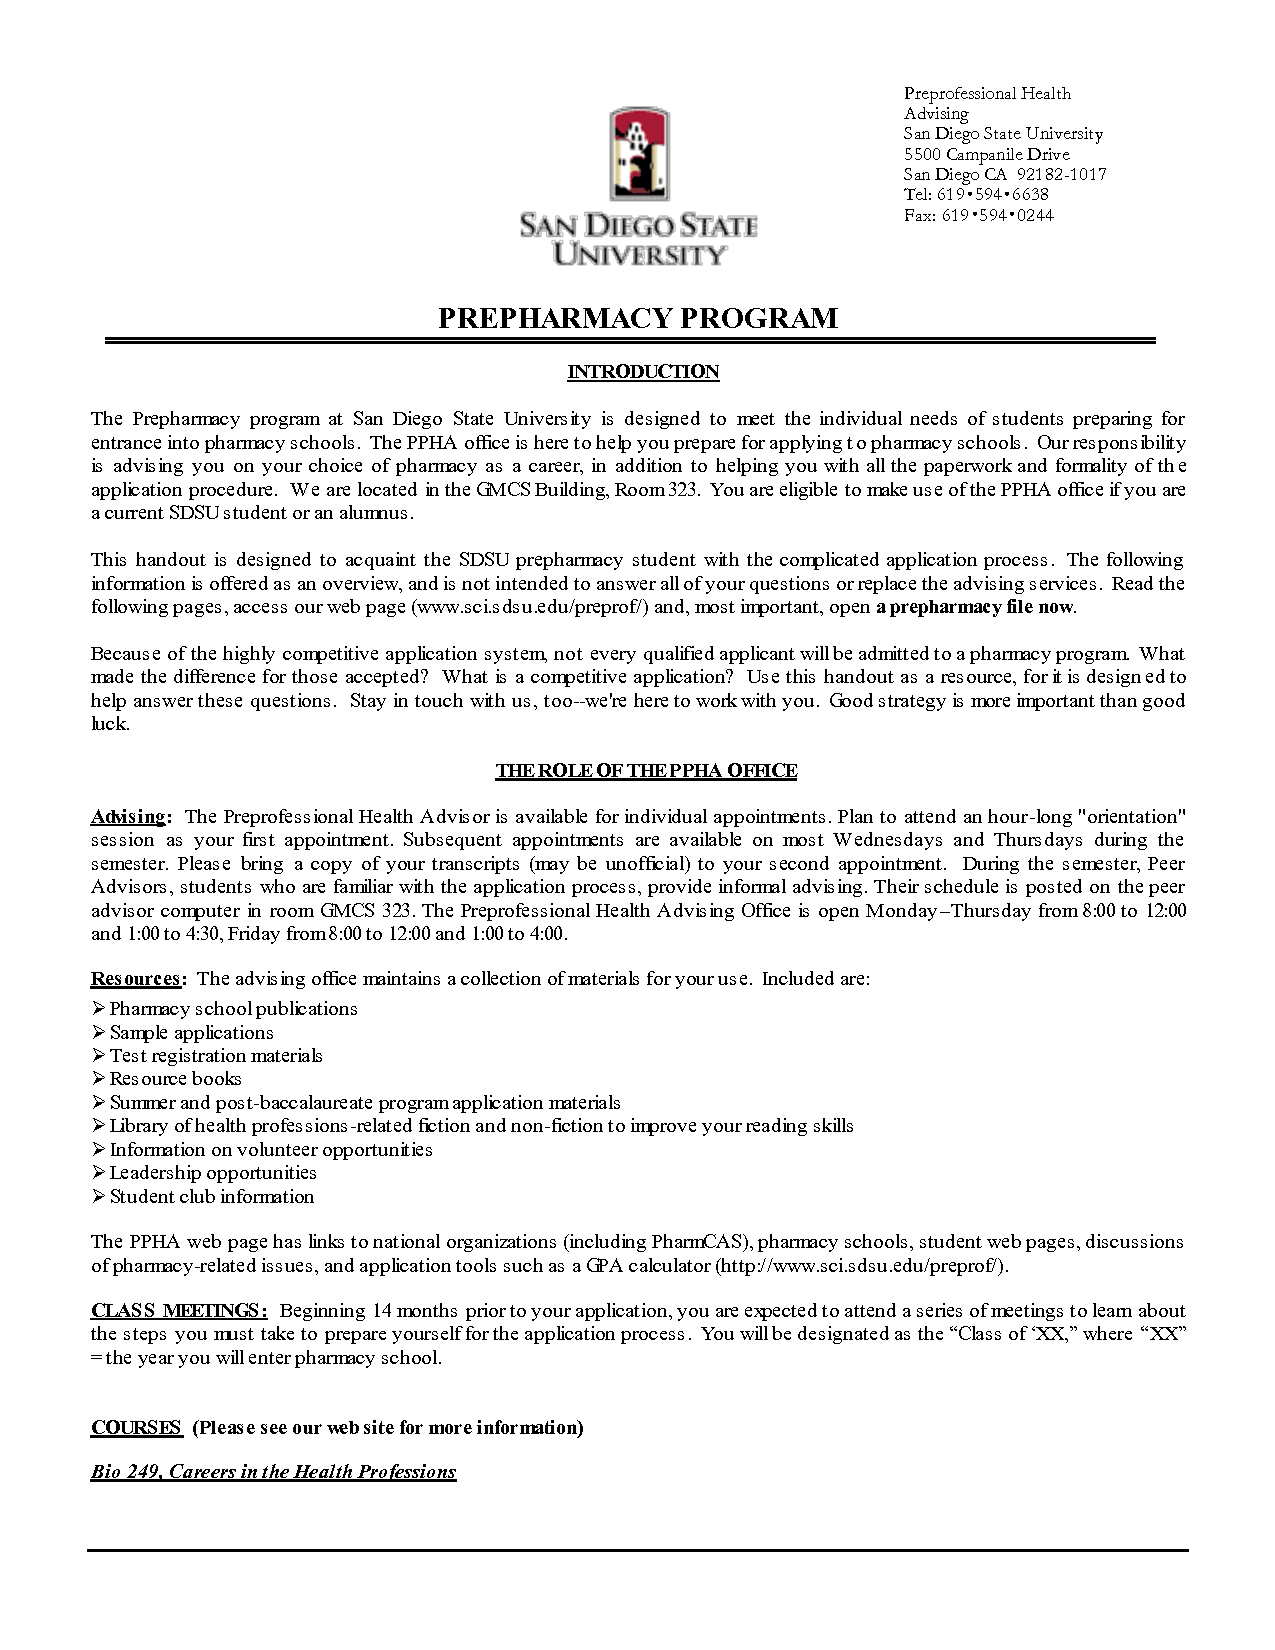 Letter Of Intent Template Graduate School - Pharmacy School Essay Pharmacy School Essay Ideas for Othello